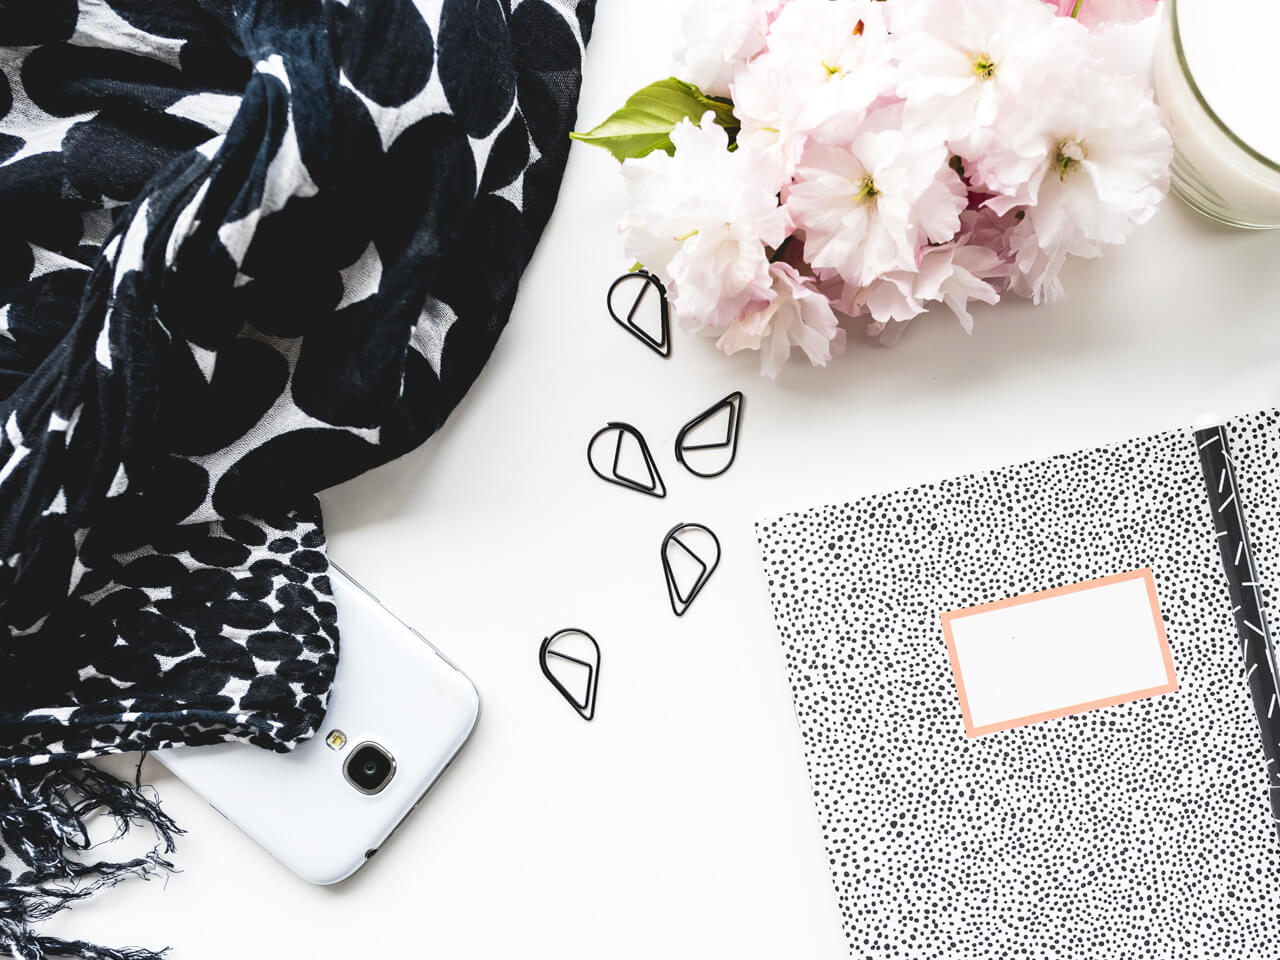 notebook, flower, paperclips and black and white print scarf